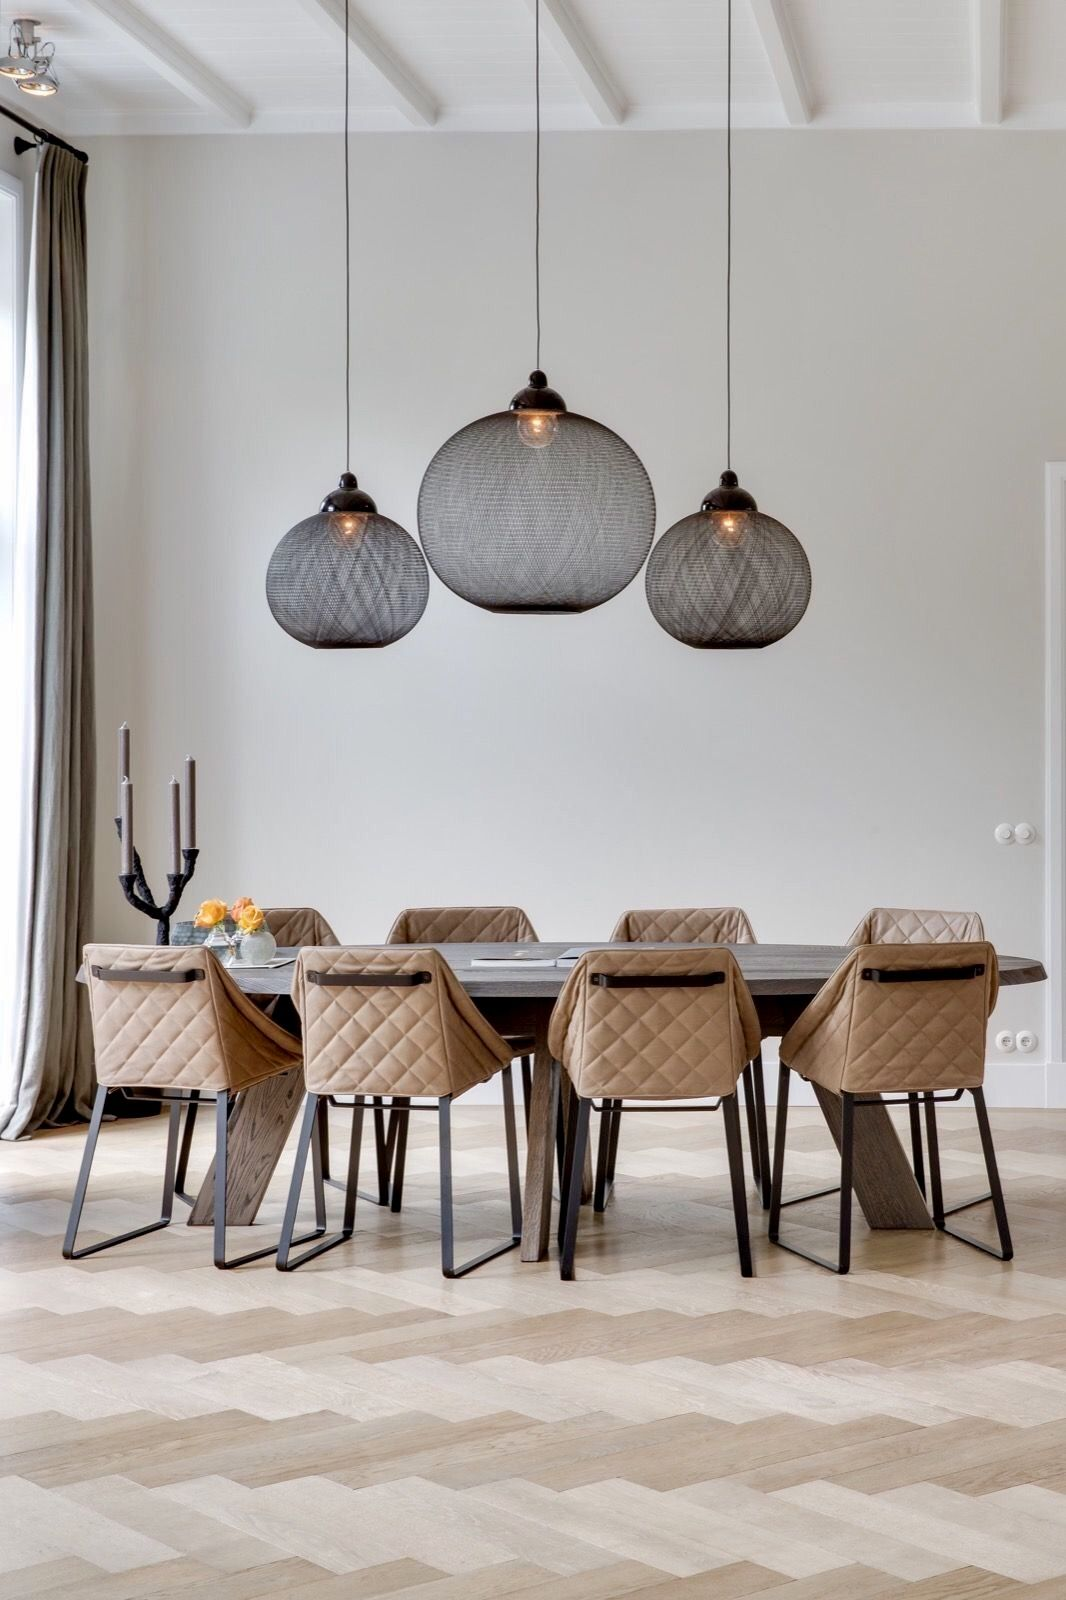 kitchen dining lighting ideas. Dramatic Pendant Lights - Great With A Full Height Ceiling. Kitchen Dining Lighting Ideas F